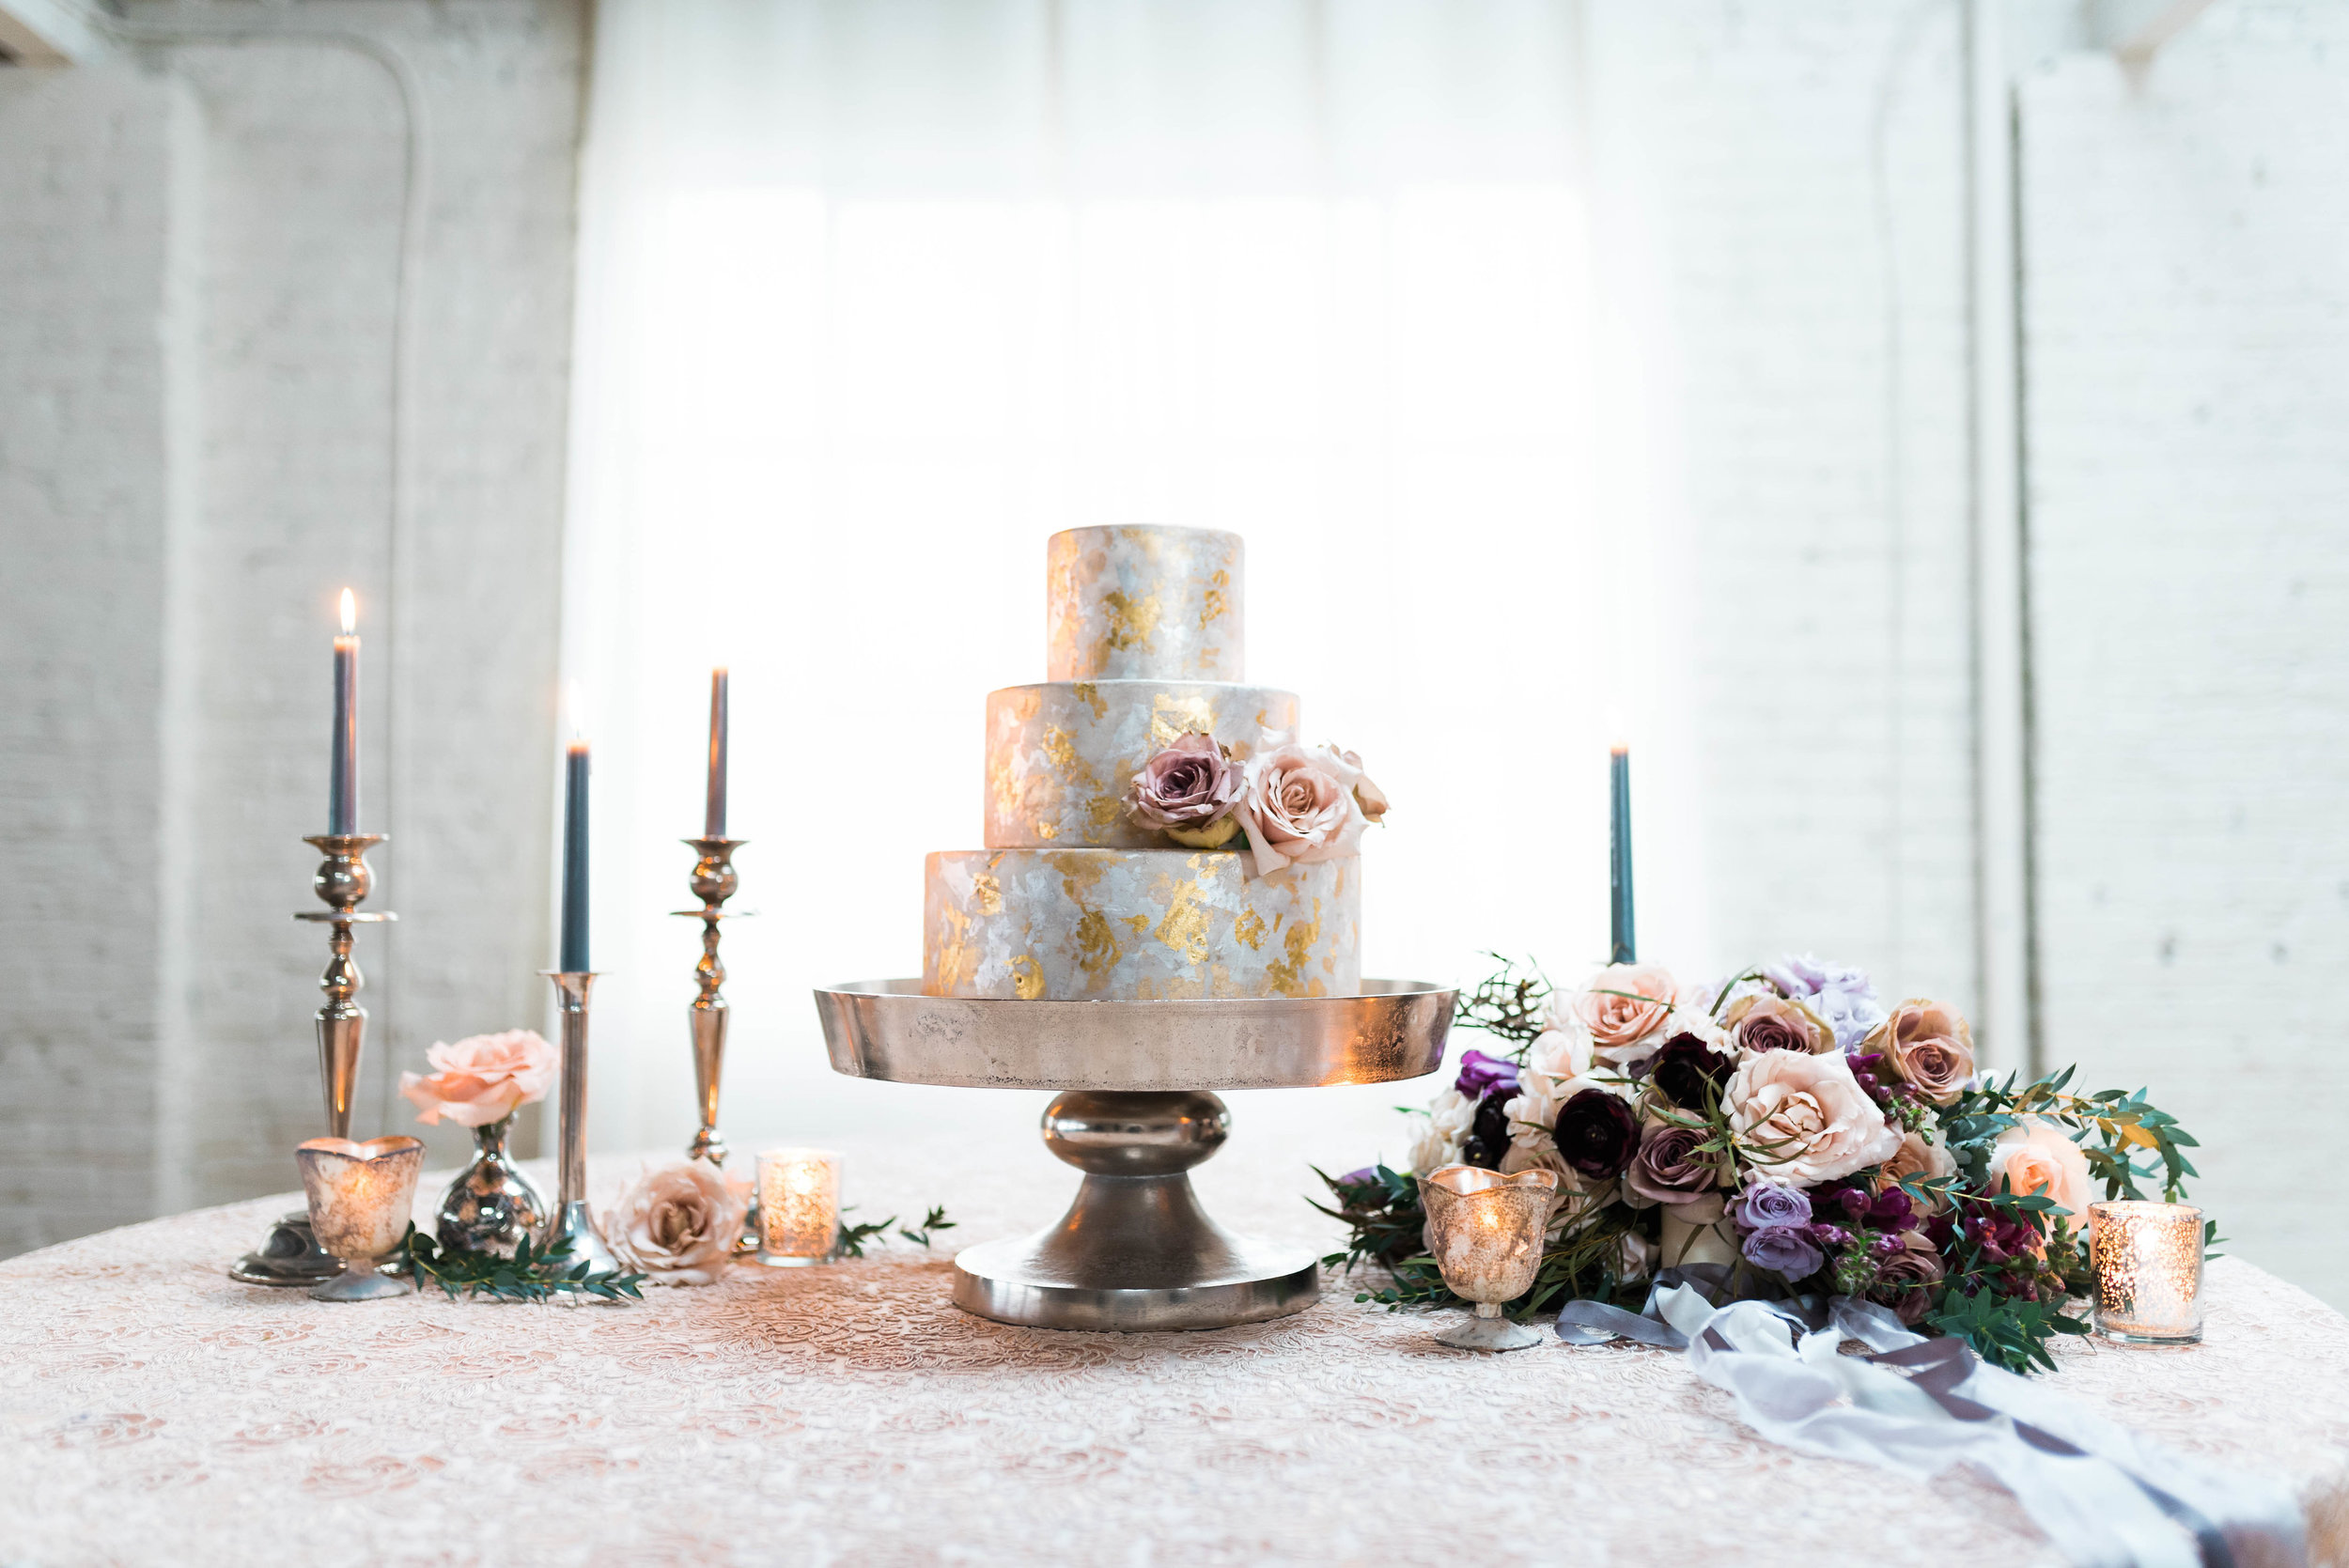 Kimberly Wiggins // Cakes by Kim